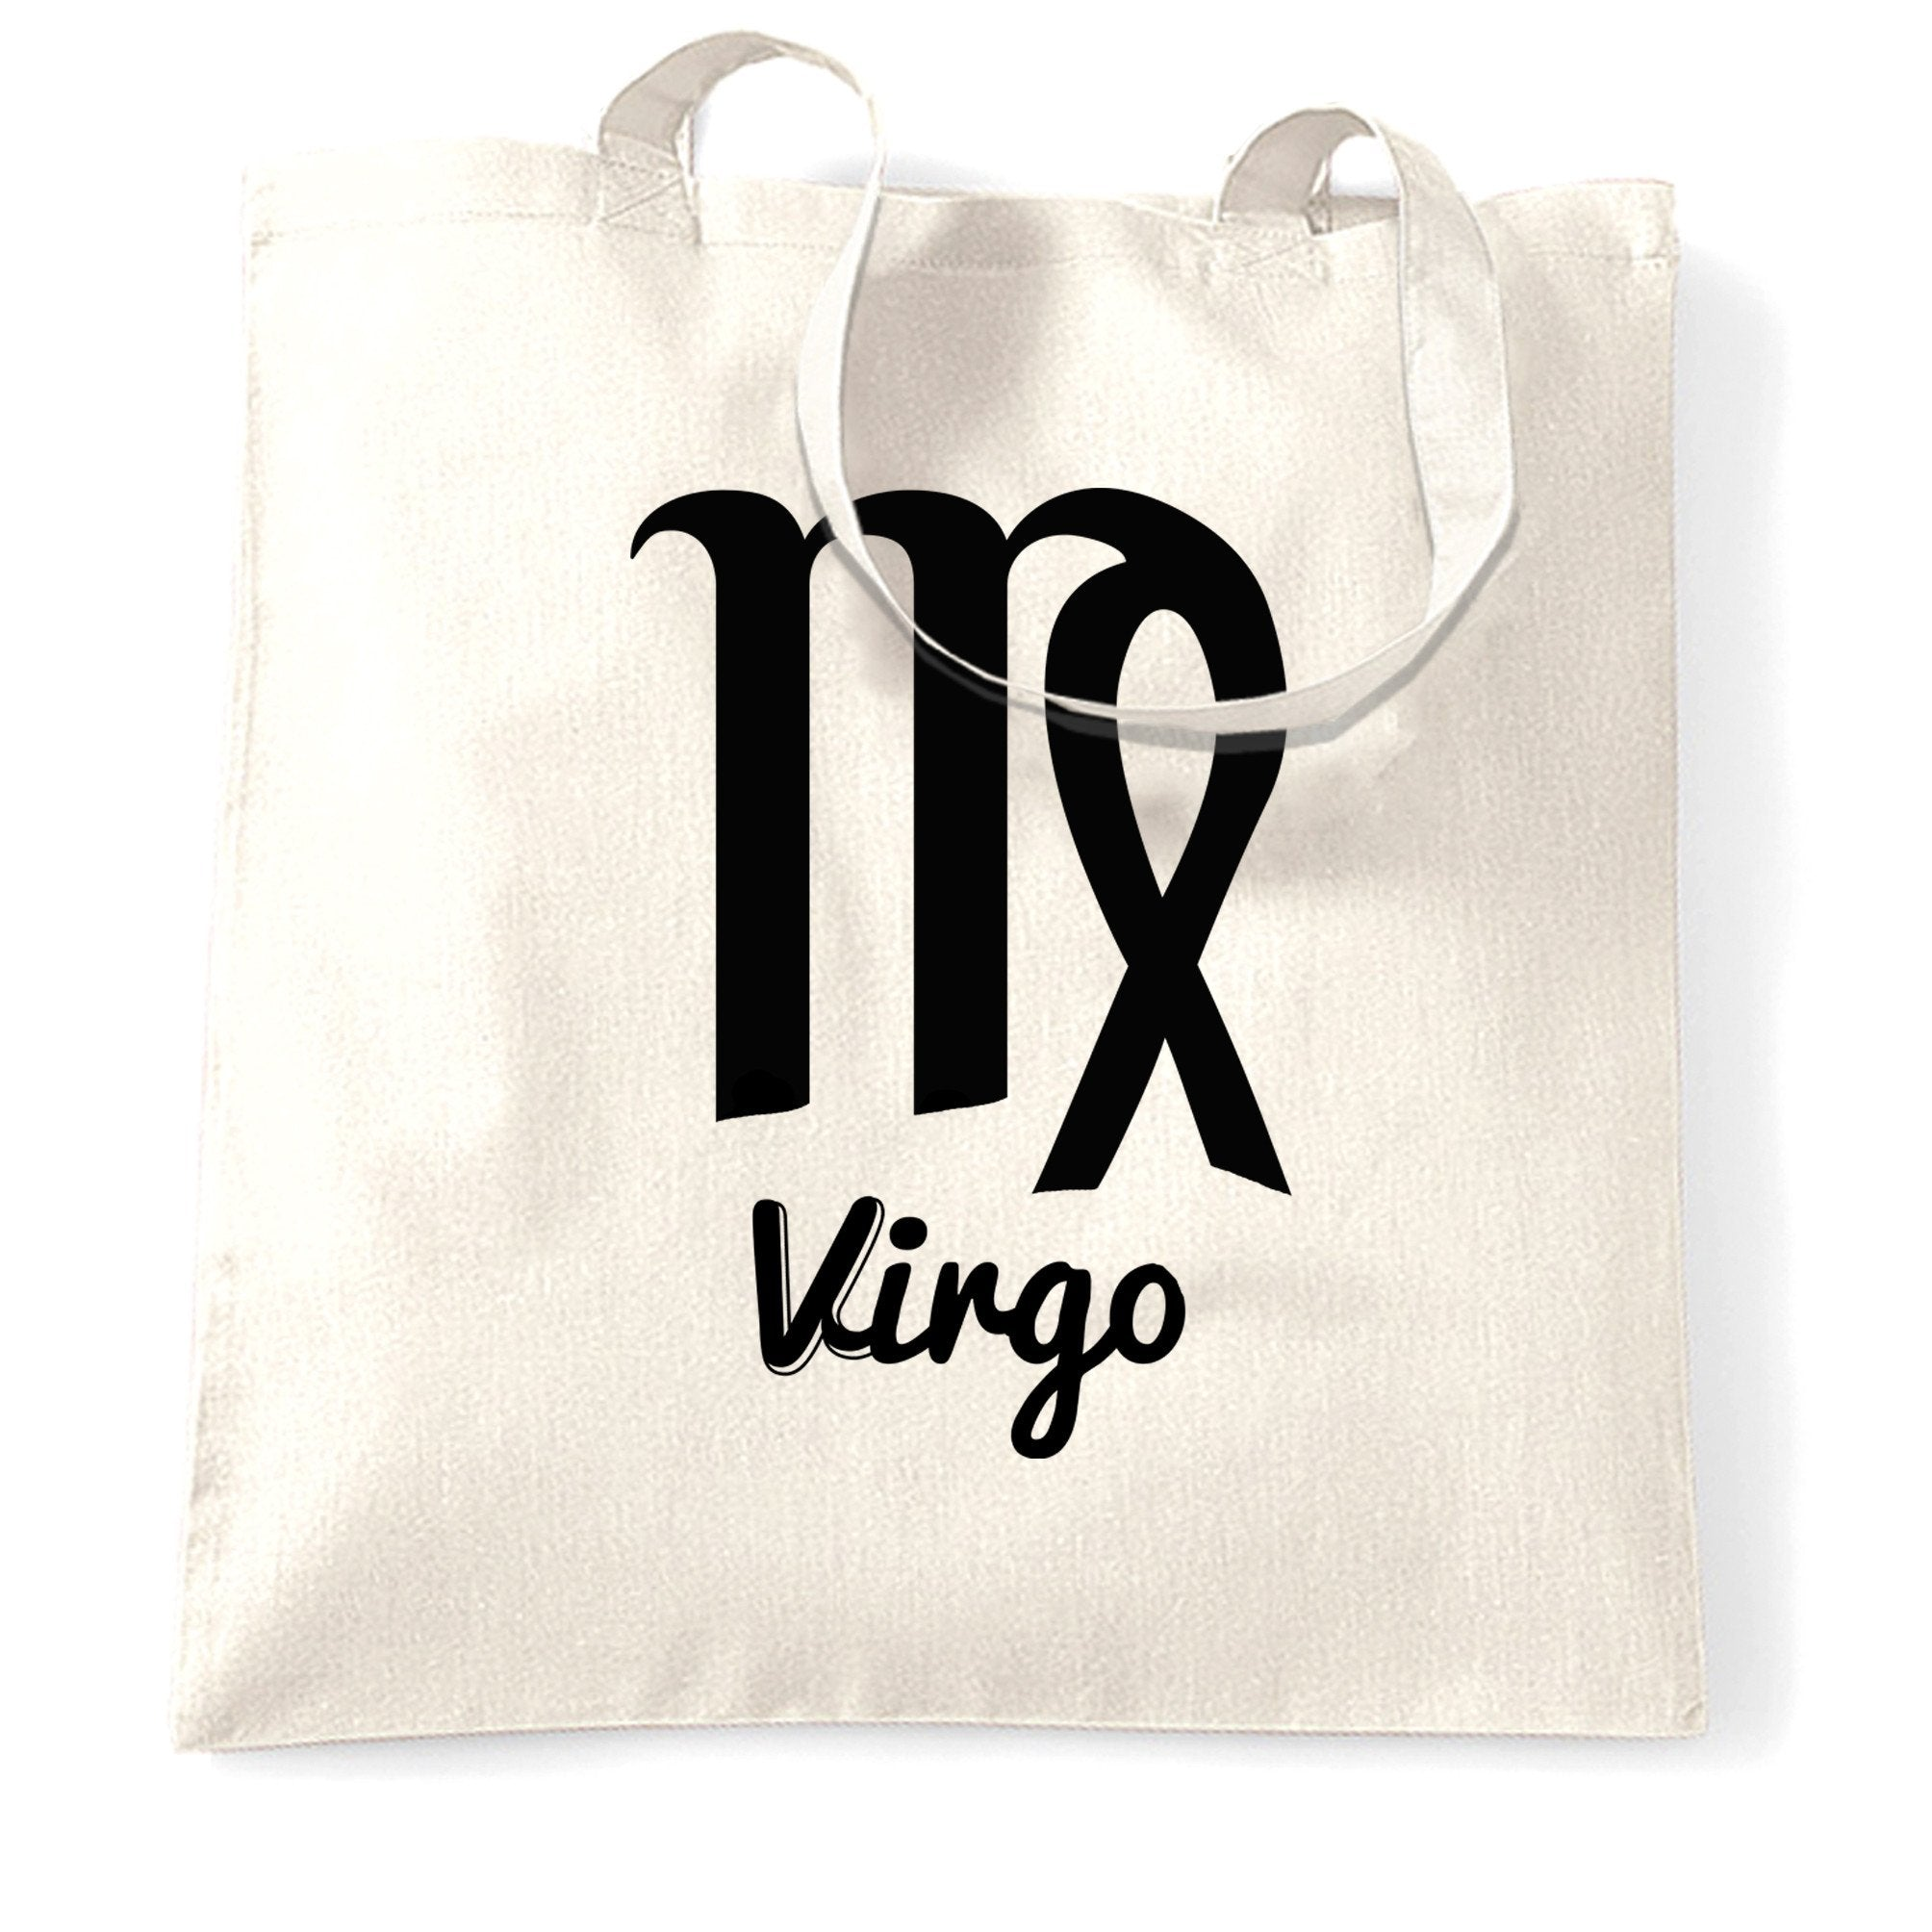 Horoscope Tote Bag Virgo Zodiac Star Sign Birthday